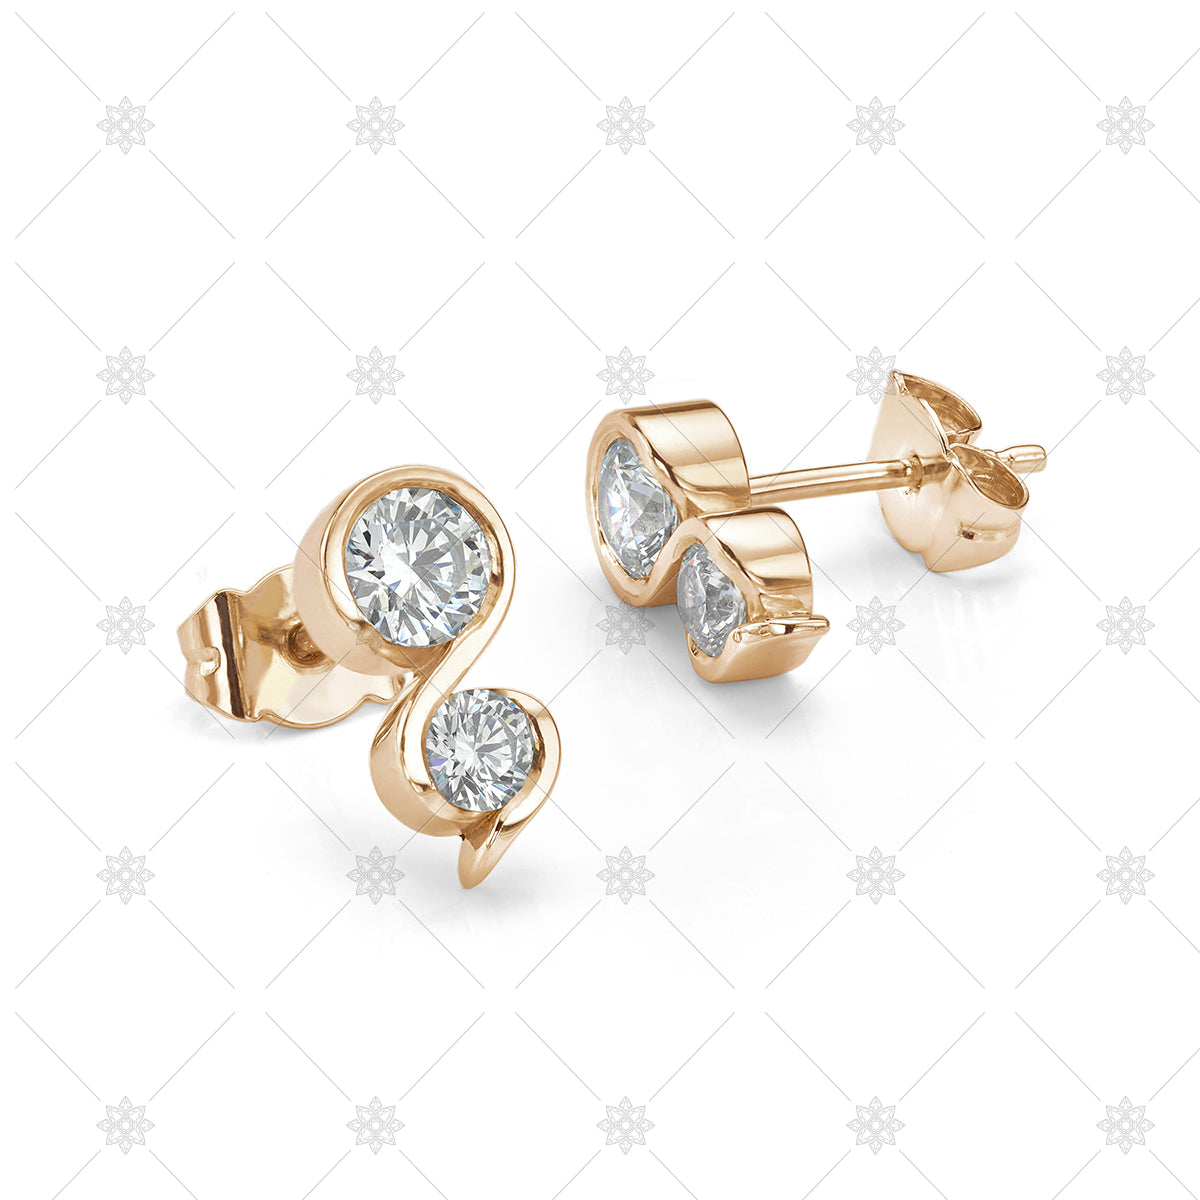 Rose gold diamond earrings image for download